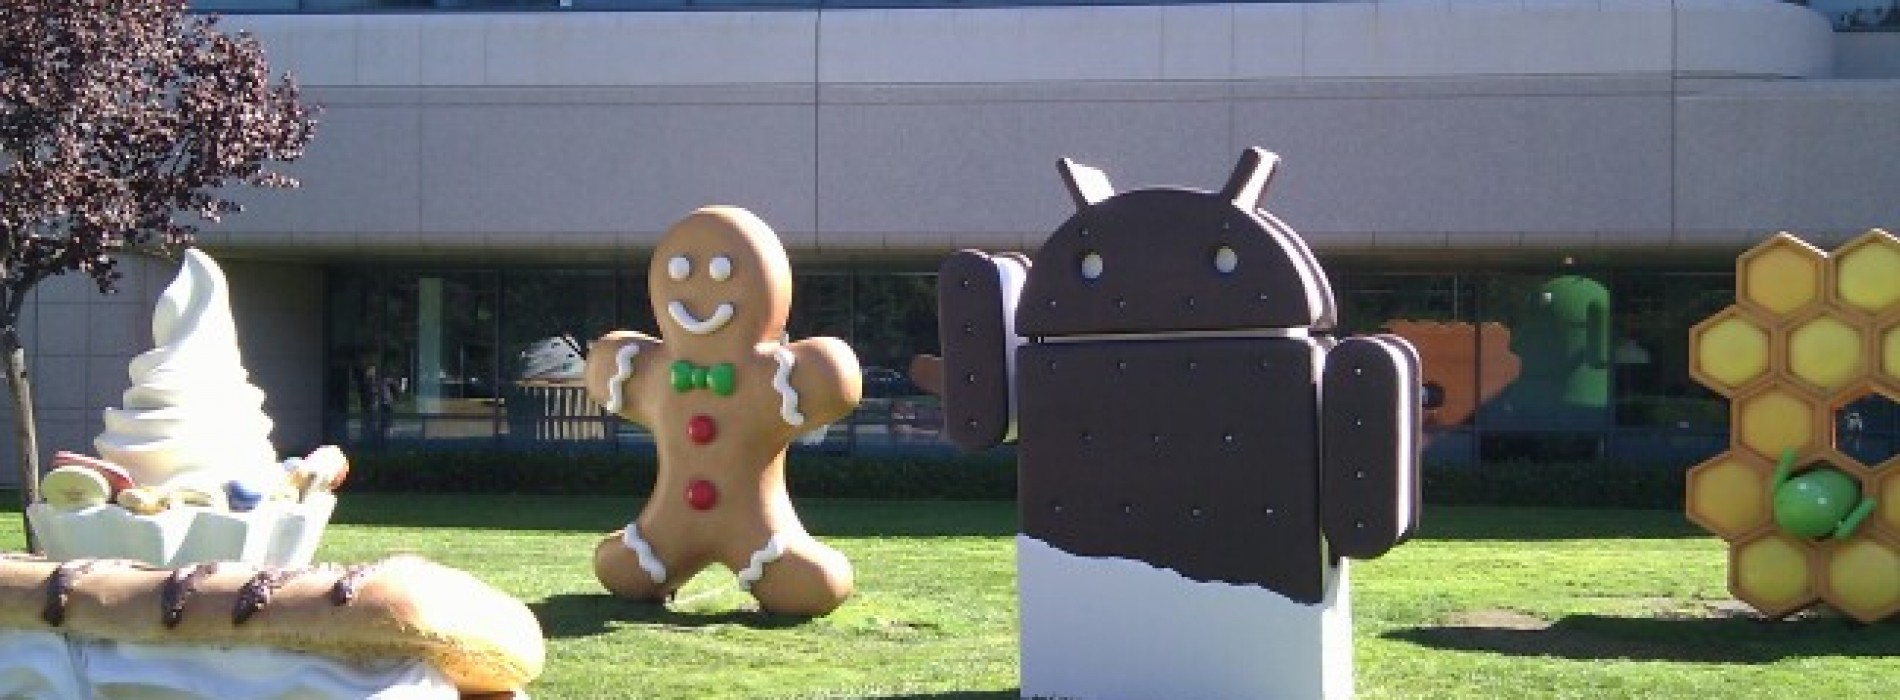 Native Screen Shots Expected in Ice Cream Sandwich